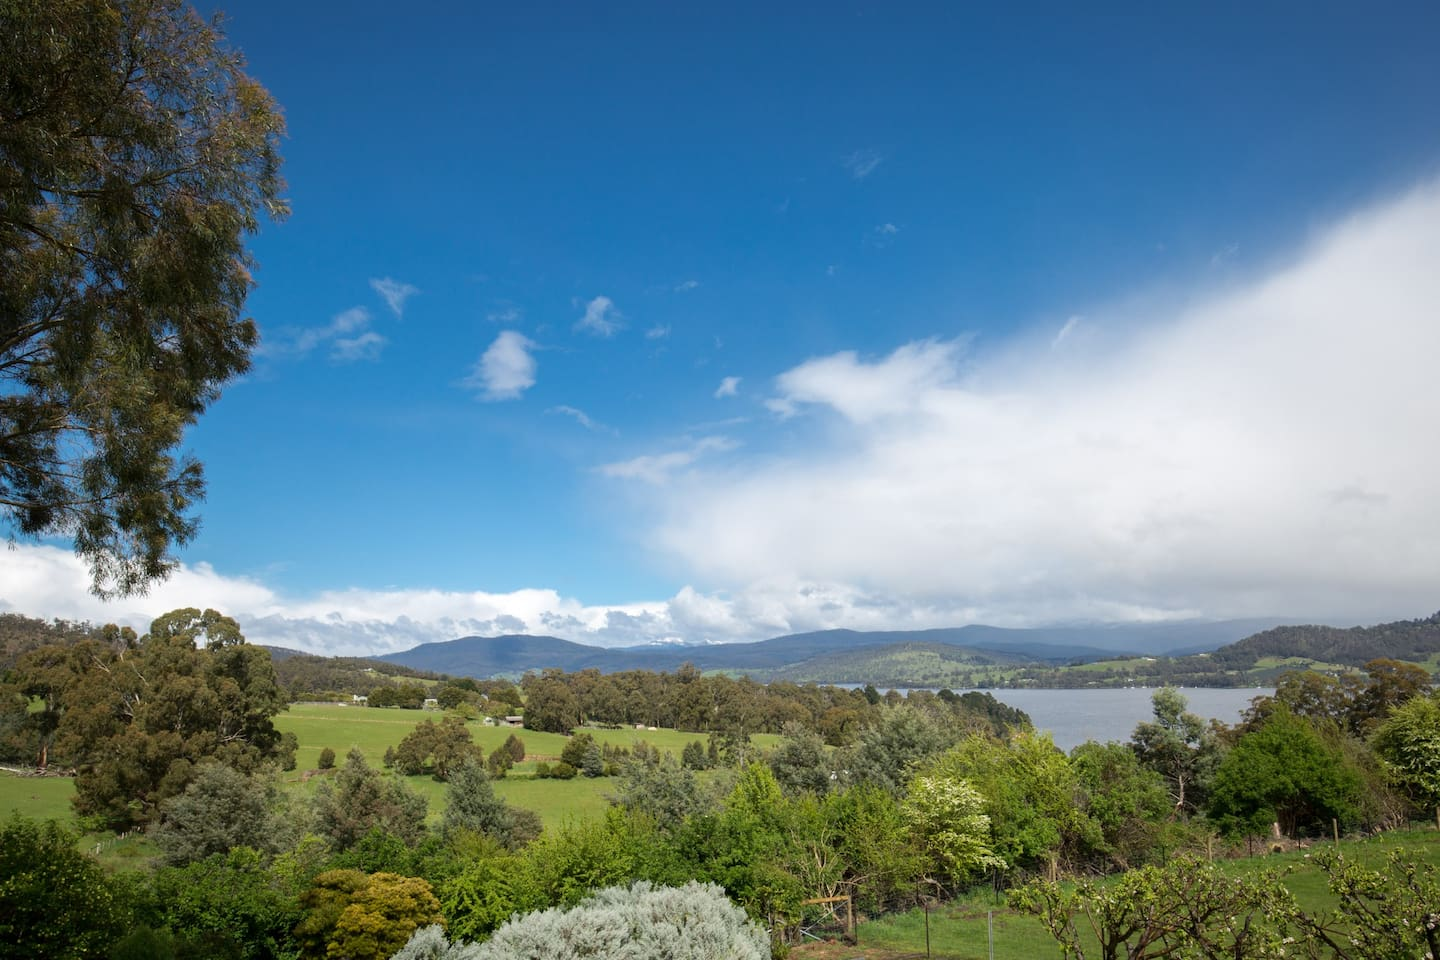 Captivating views of the Huon River and Hartz Mountains